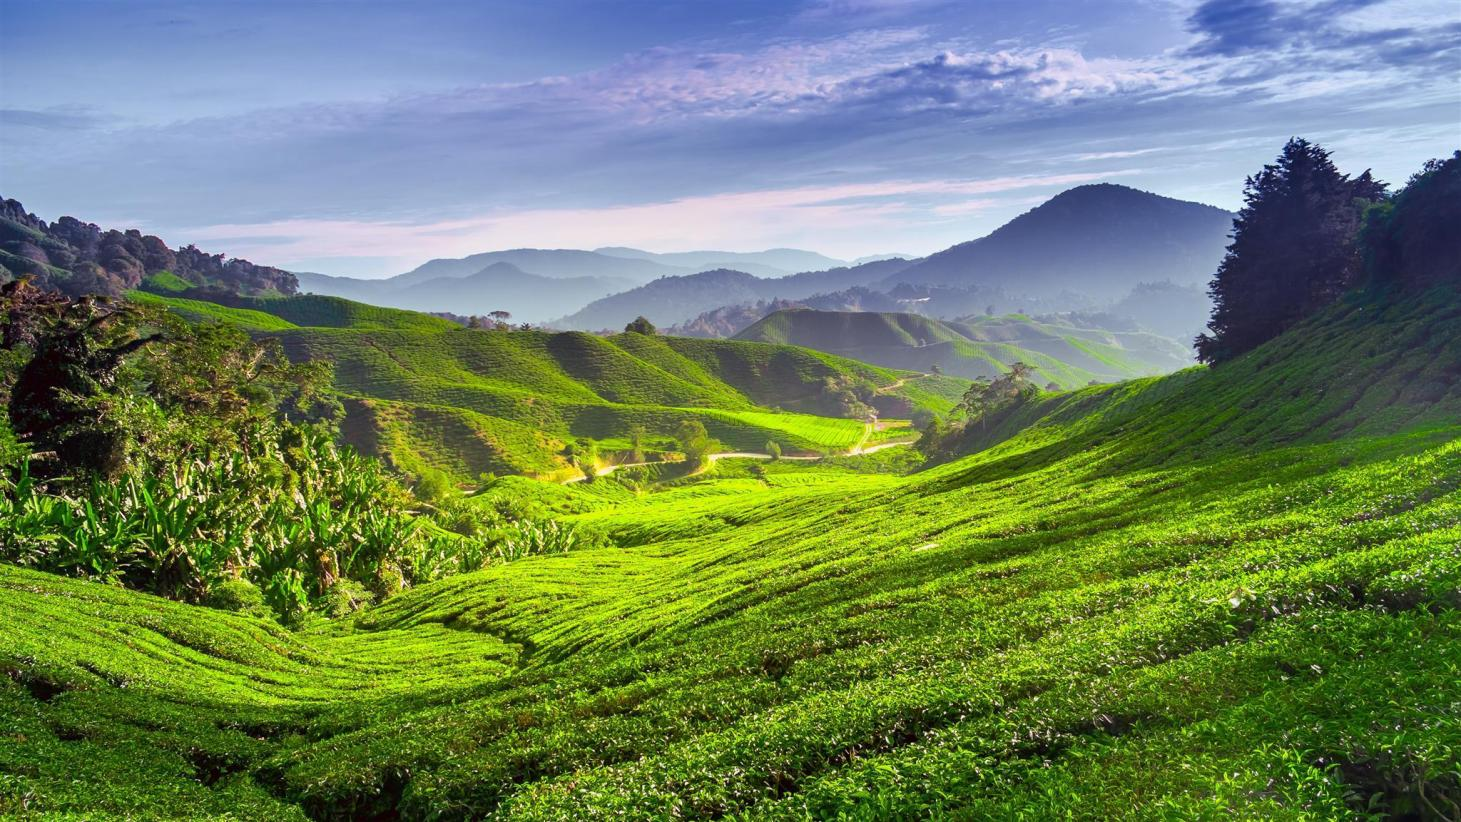 10 Best Cameron Highlands Hotels: HD Photos + Reviews of Hotels in